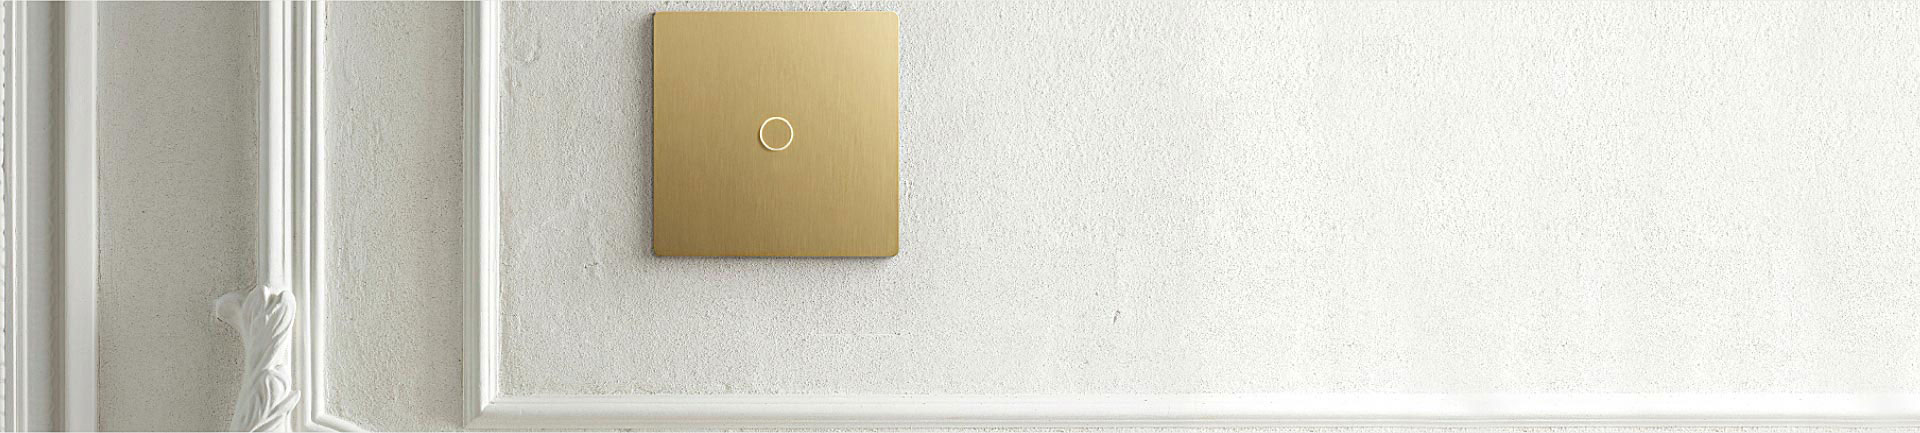 Wall-mounted single column, 1-button Alisse keypad